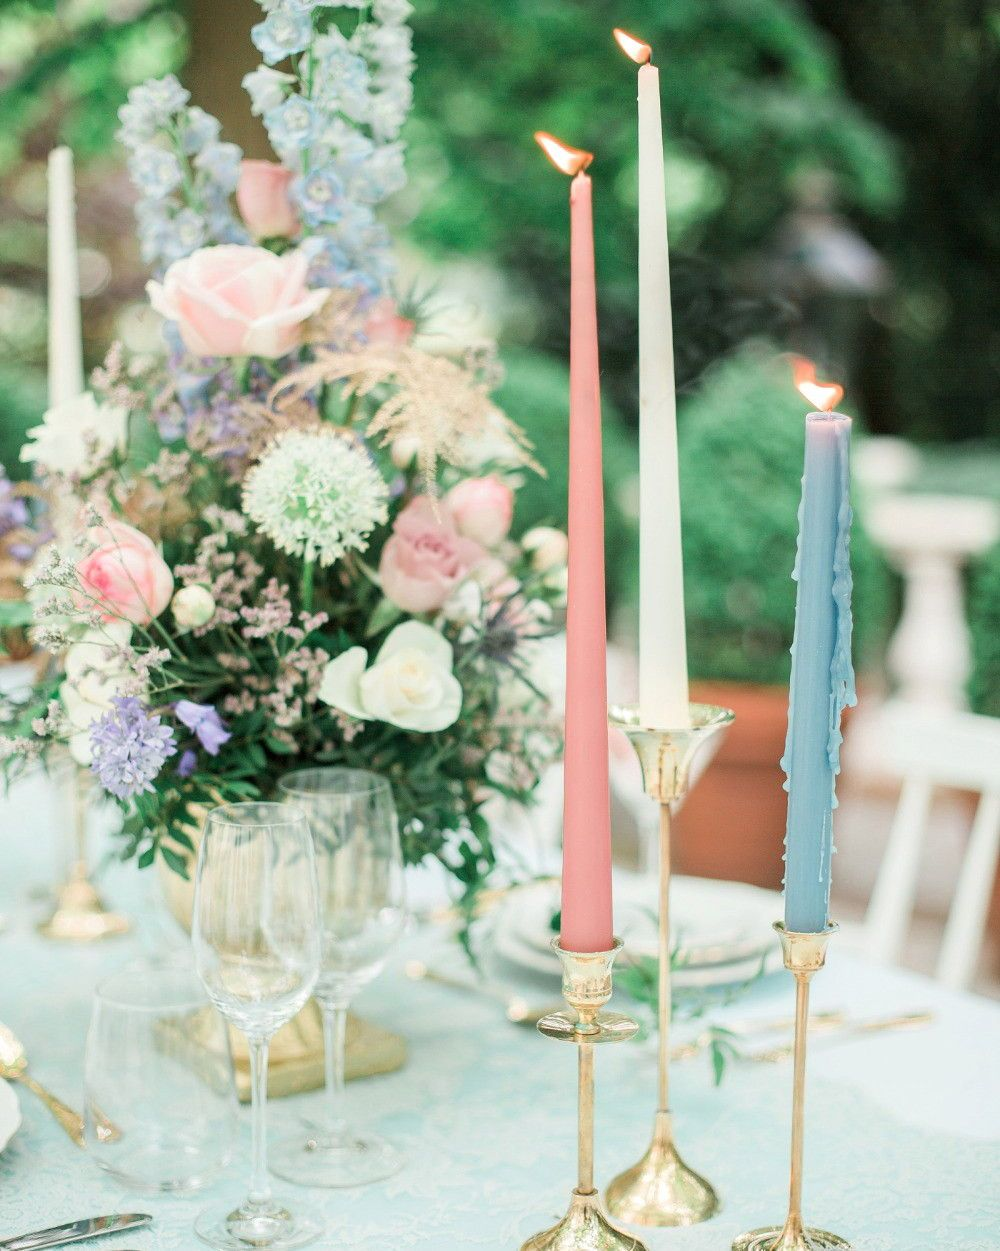 33 Unique Spring Wedding Ideas Spring Wedding Centerpieces Spring Wedding Colors Wedding Centerpieces